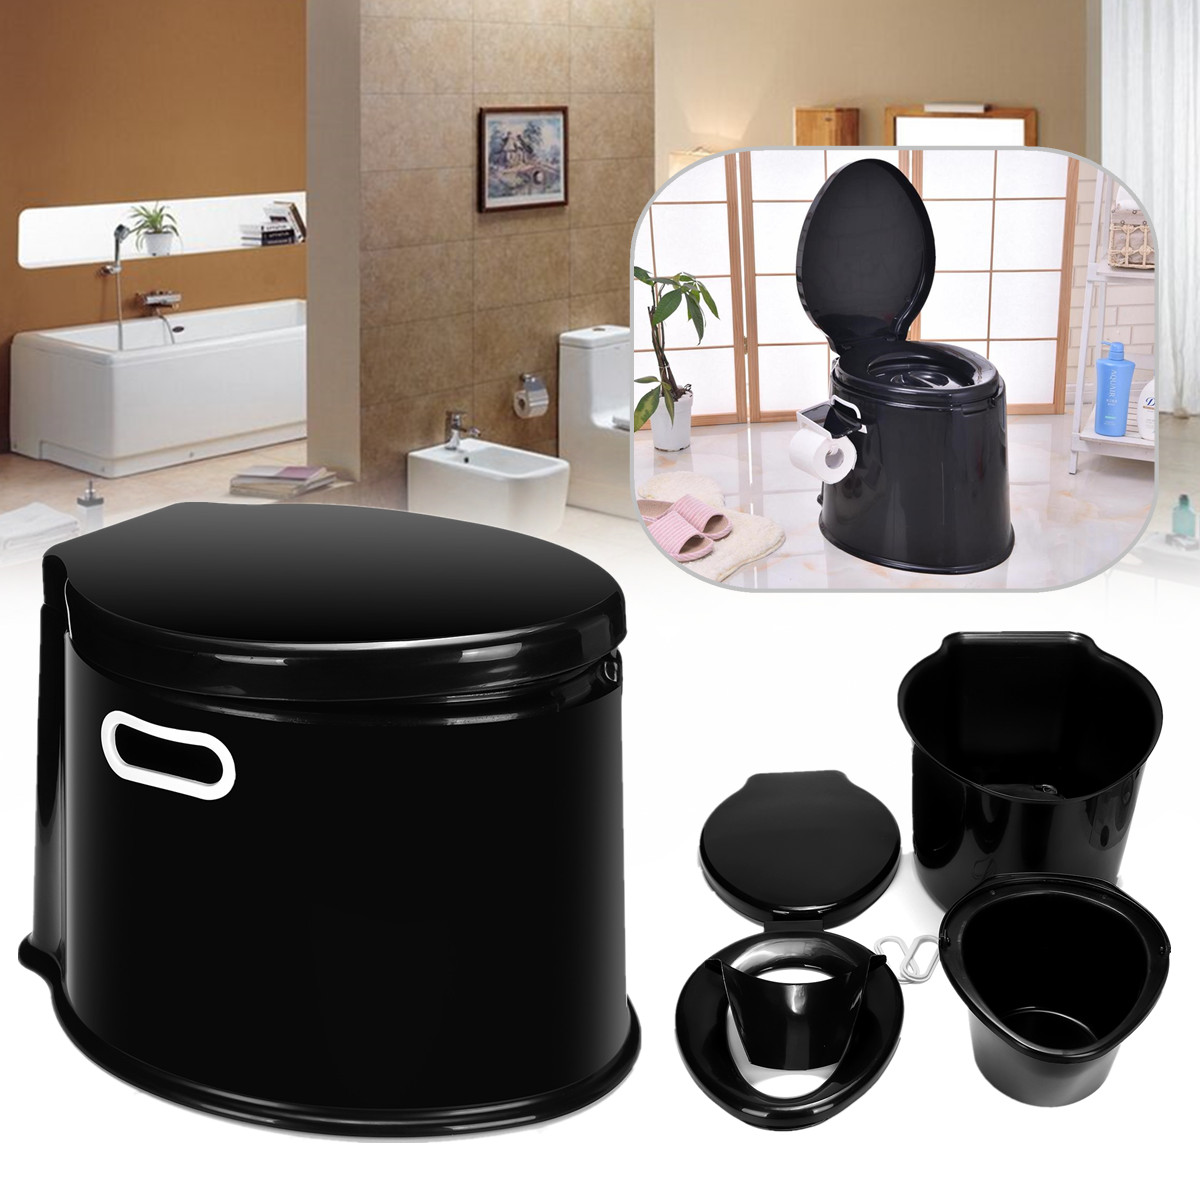 Camping Toilet Outdoor Travel Plastic 5 Litre Camp Toilet Portable Camping Rv Caravan Commode With Paper Hook Camping Shop